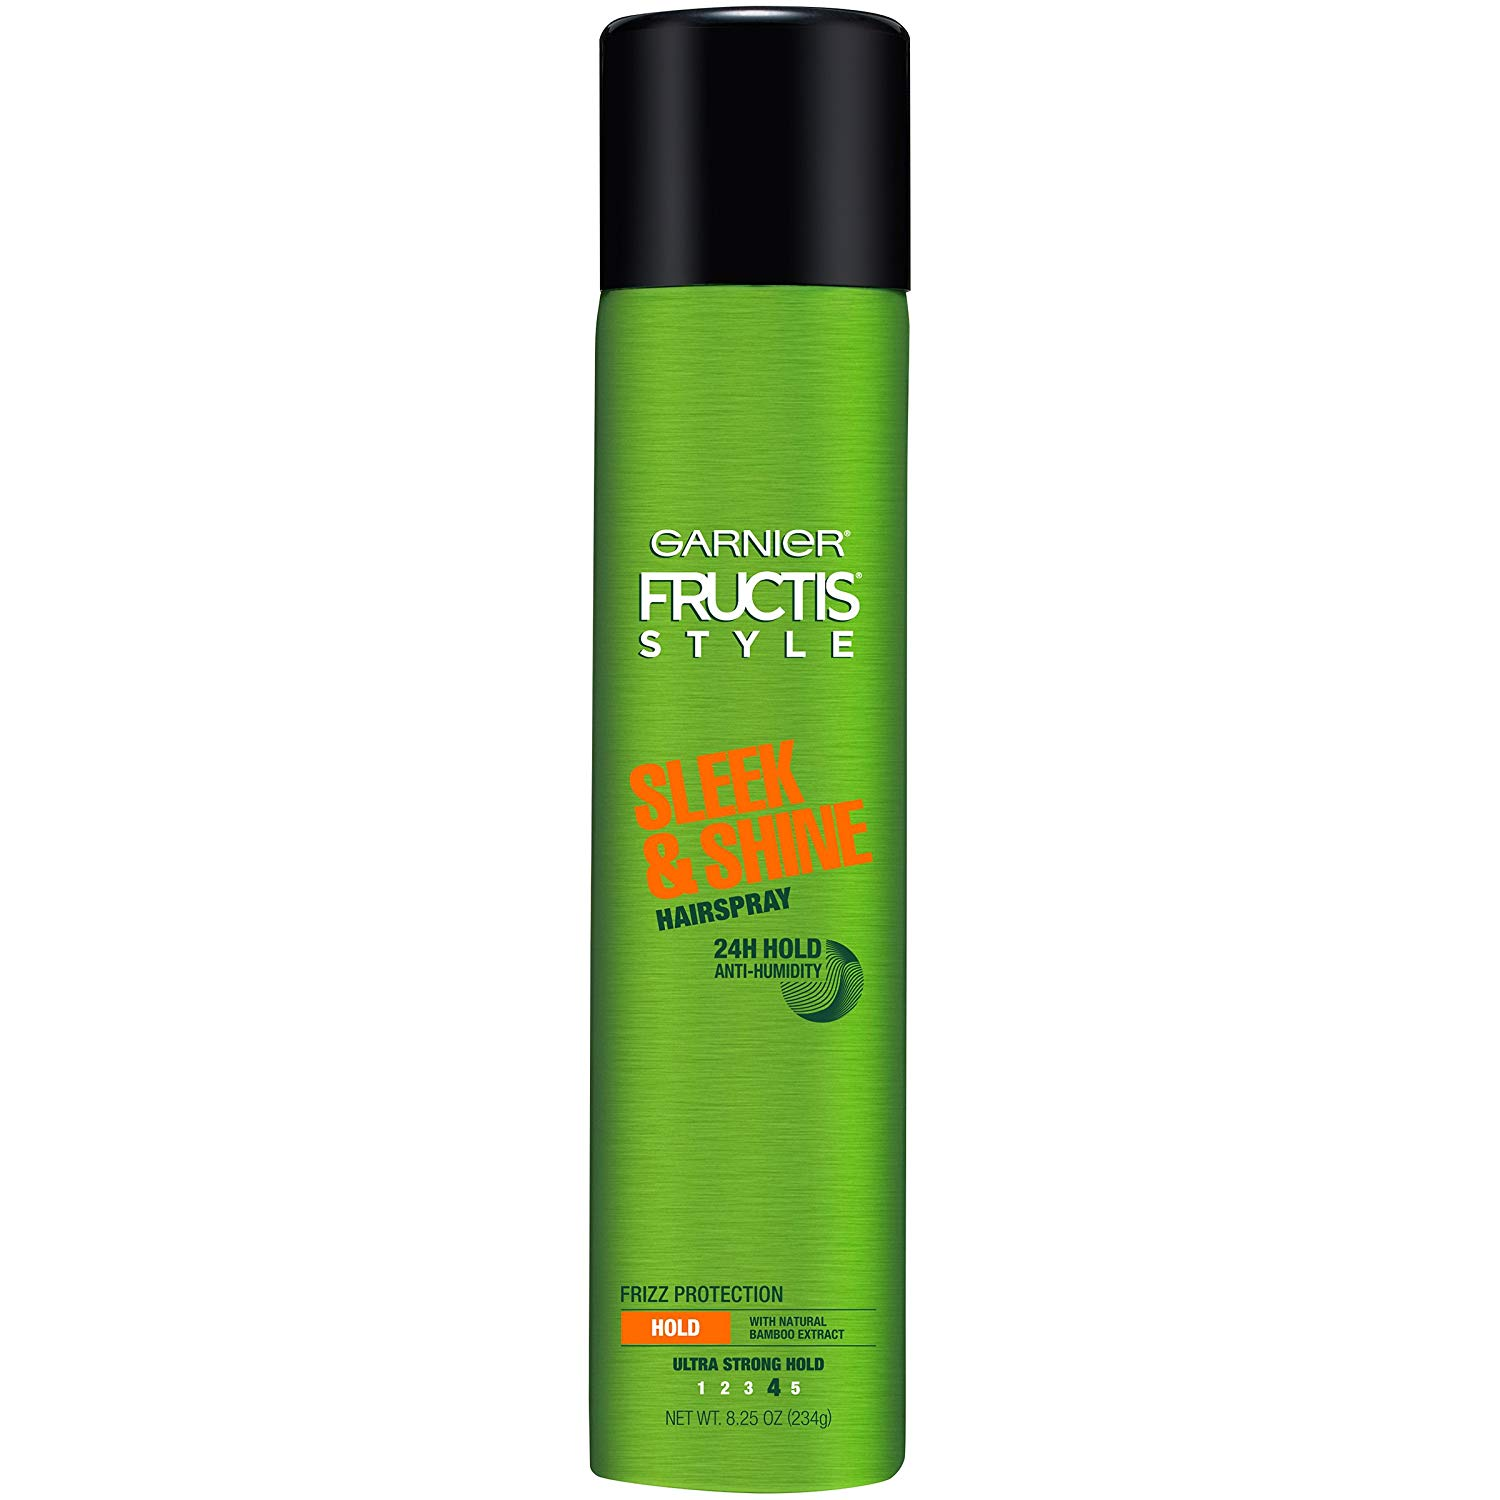 Garnier Fructis Hairspray, Ultra Strong Hold